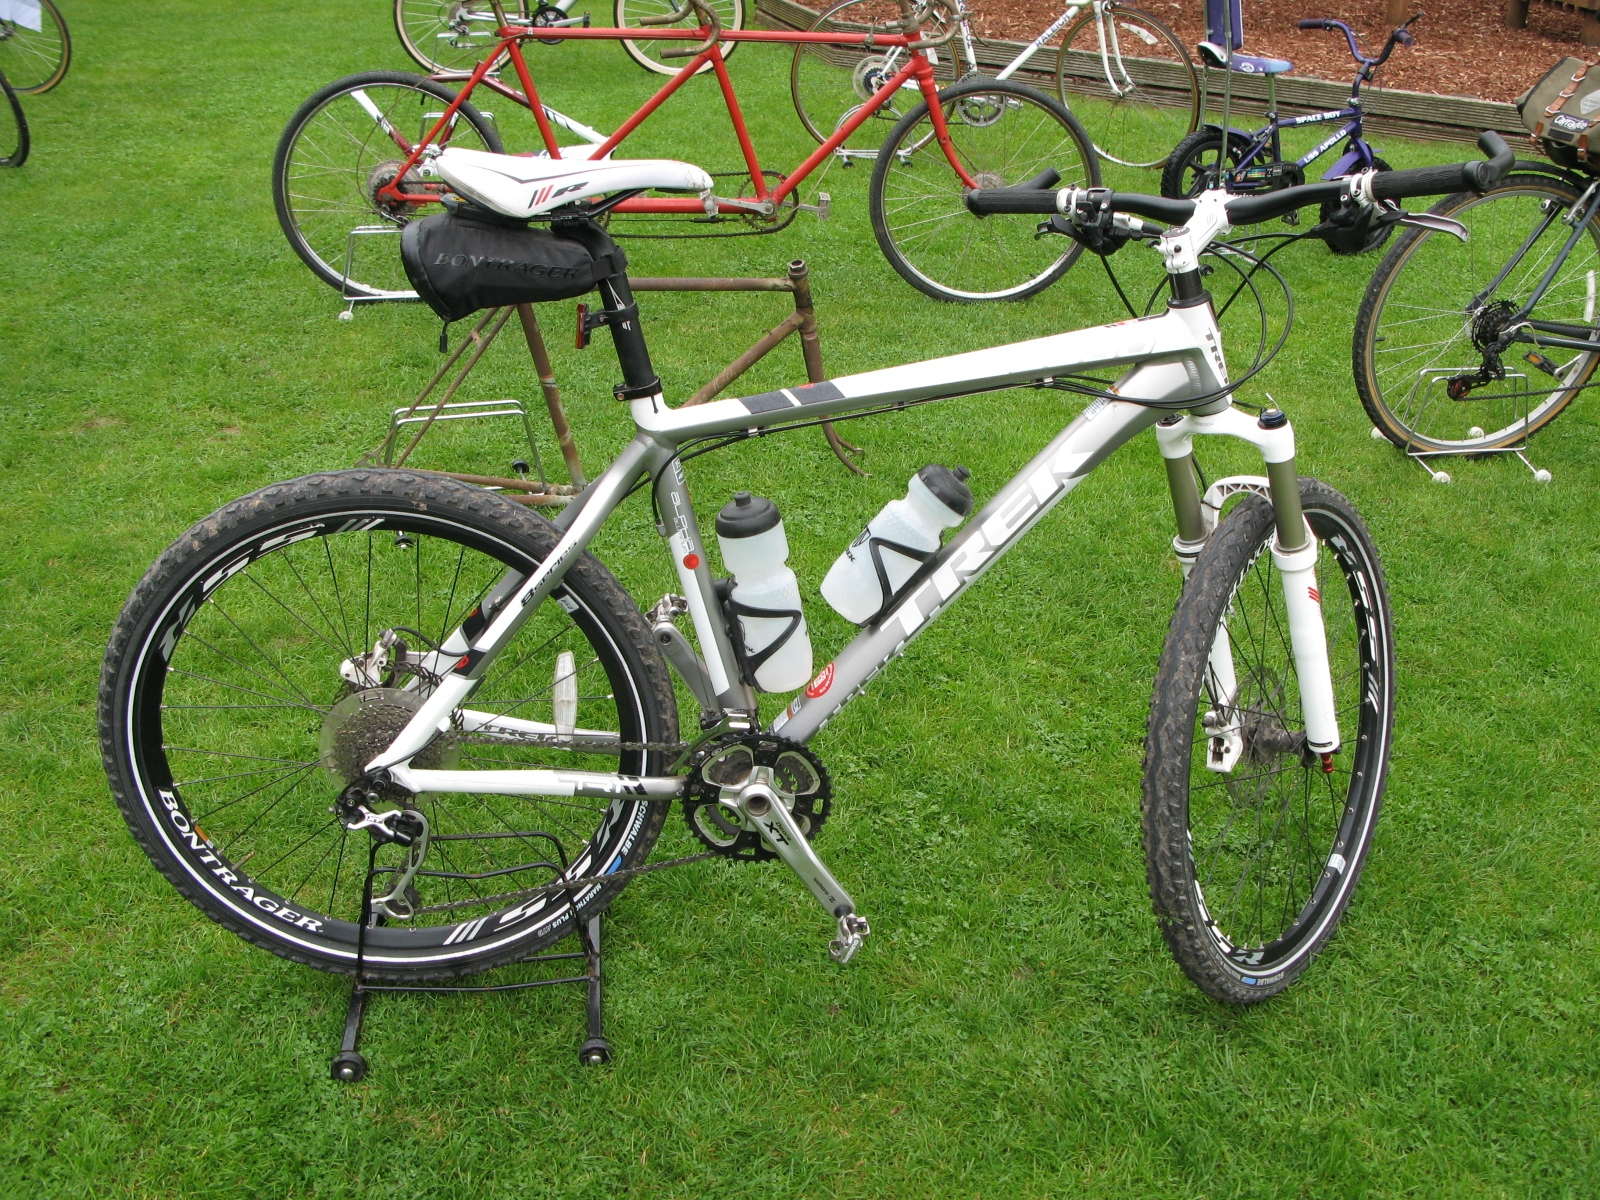 Trek 8000 Mountain Bike - Sold for £250